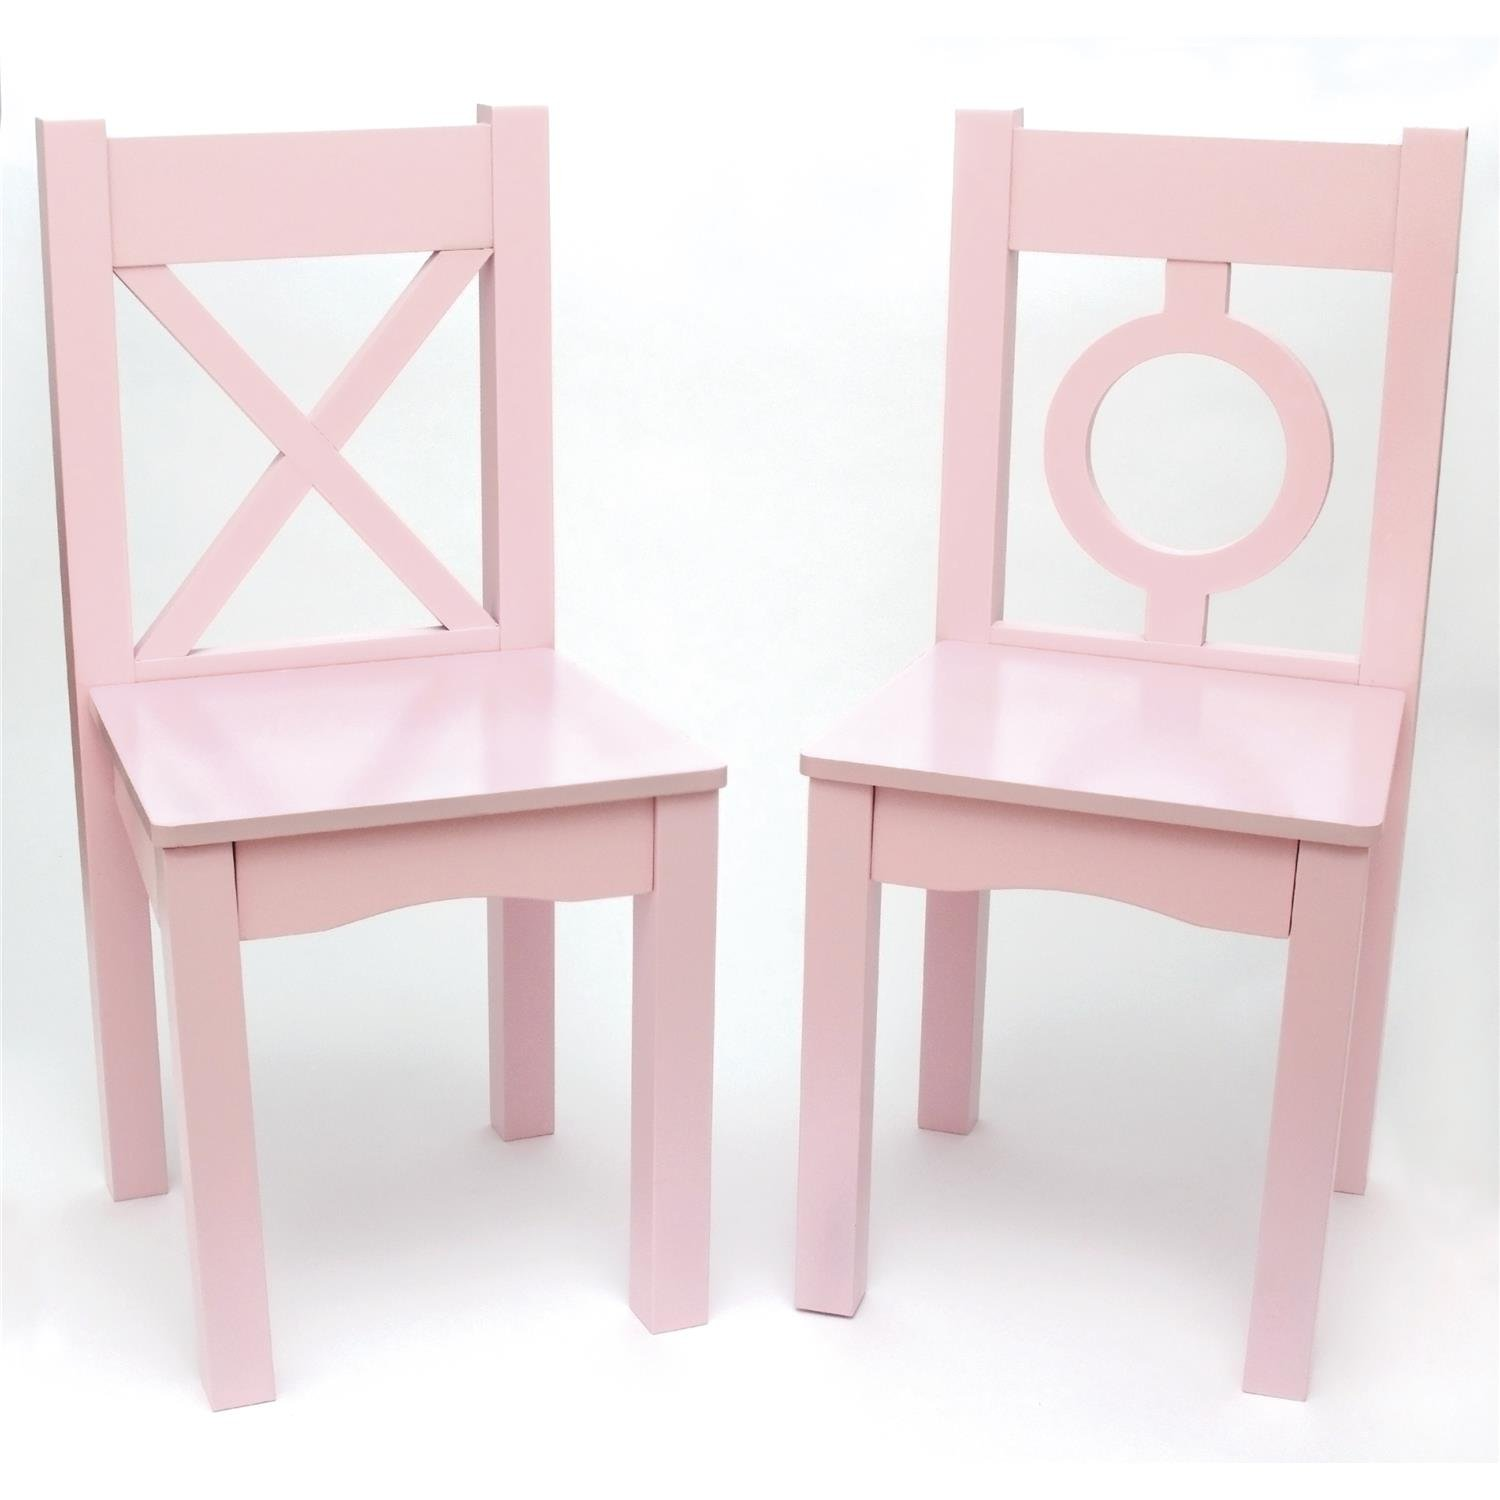 Lipper International 521-2PK Child's Chairs for Play or Activity, 12.75 W x 12.5 D x 27.25 H, Set of 2, Light Pink